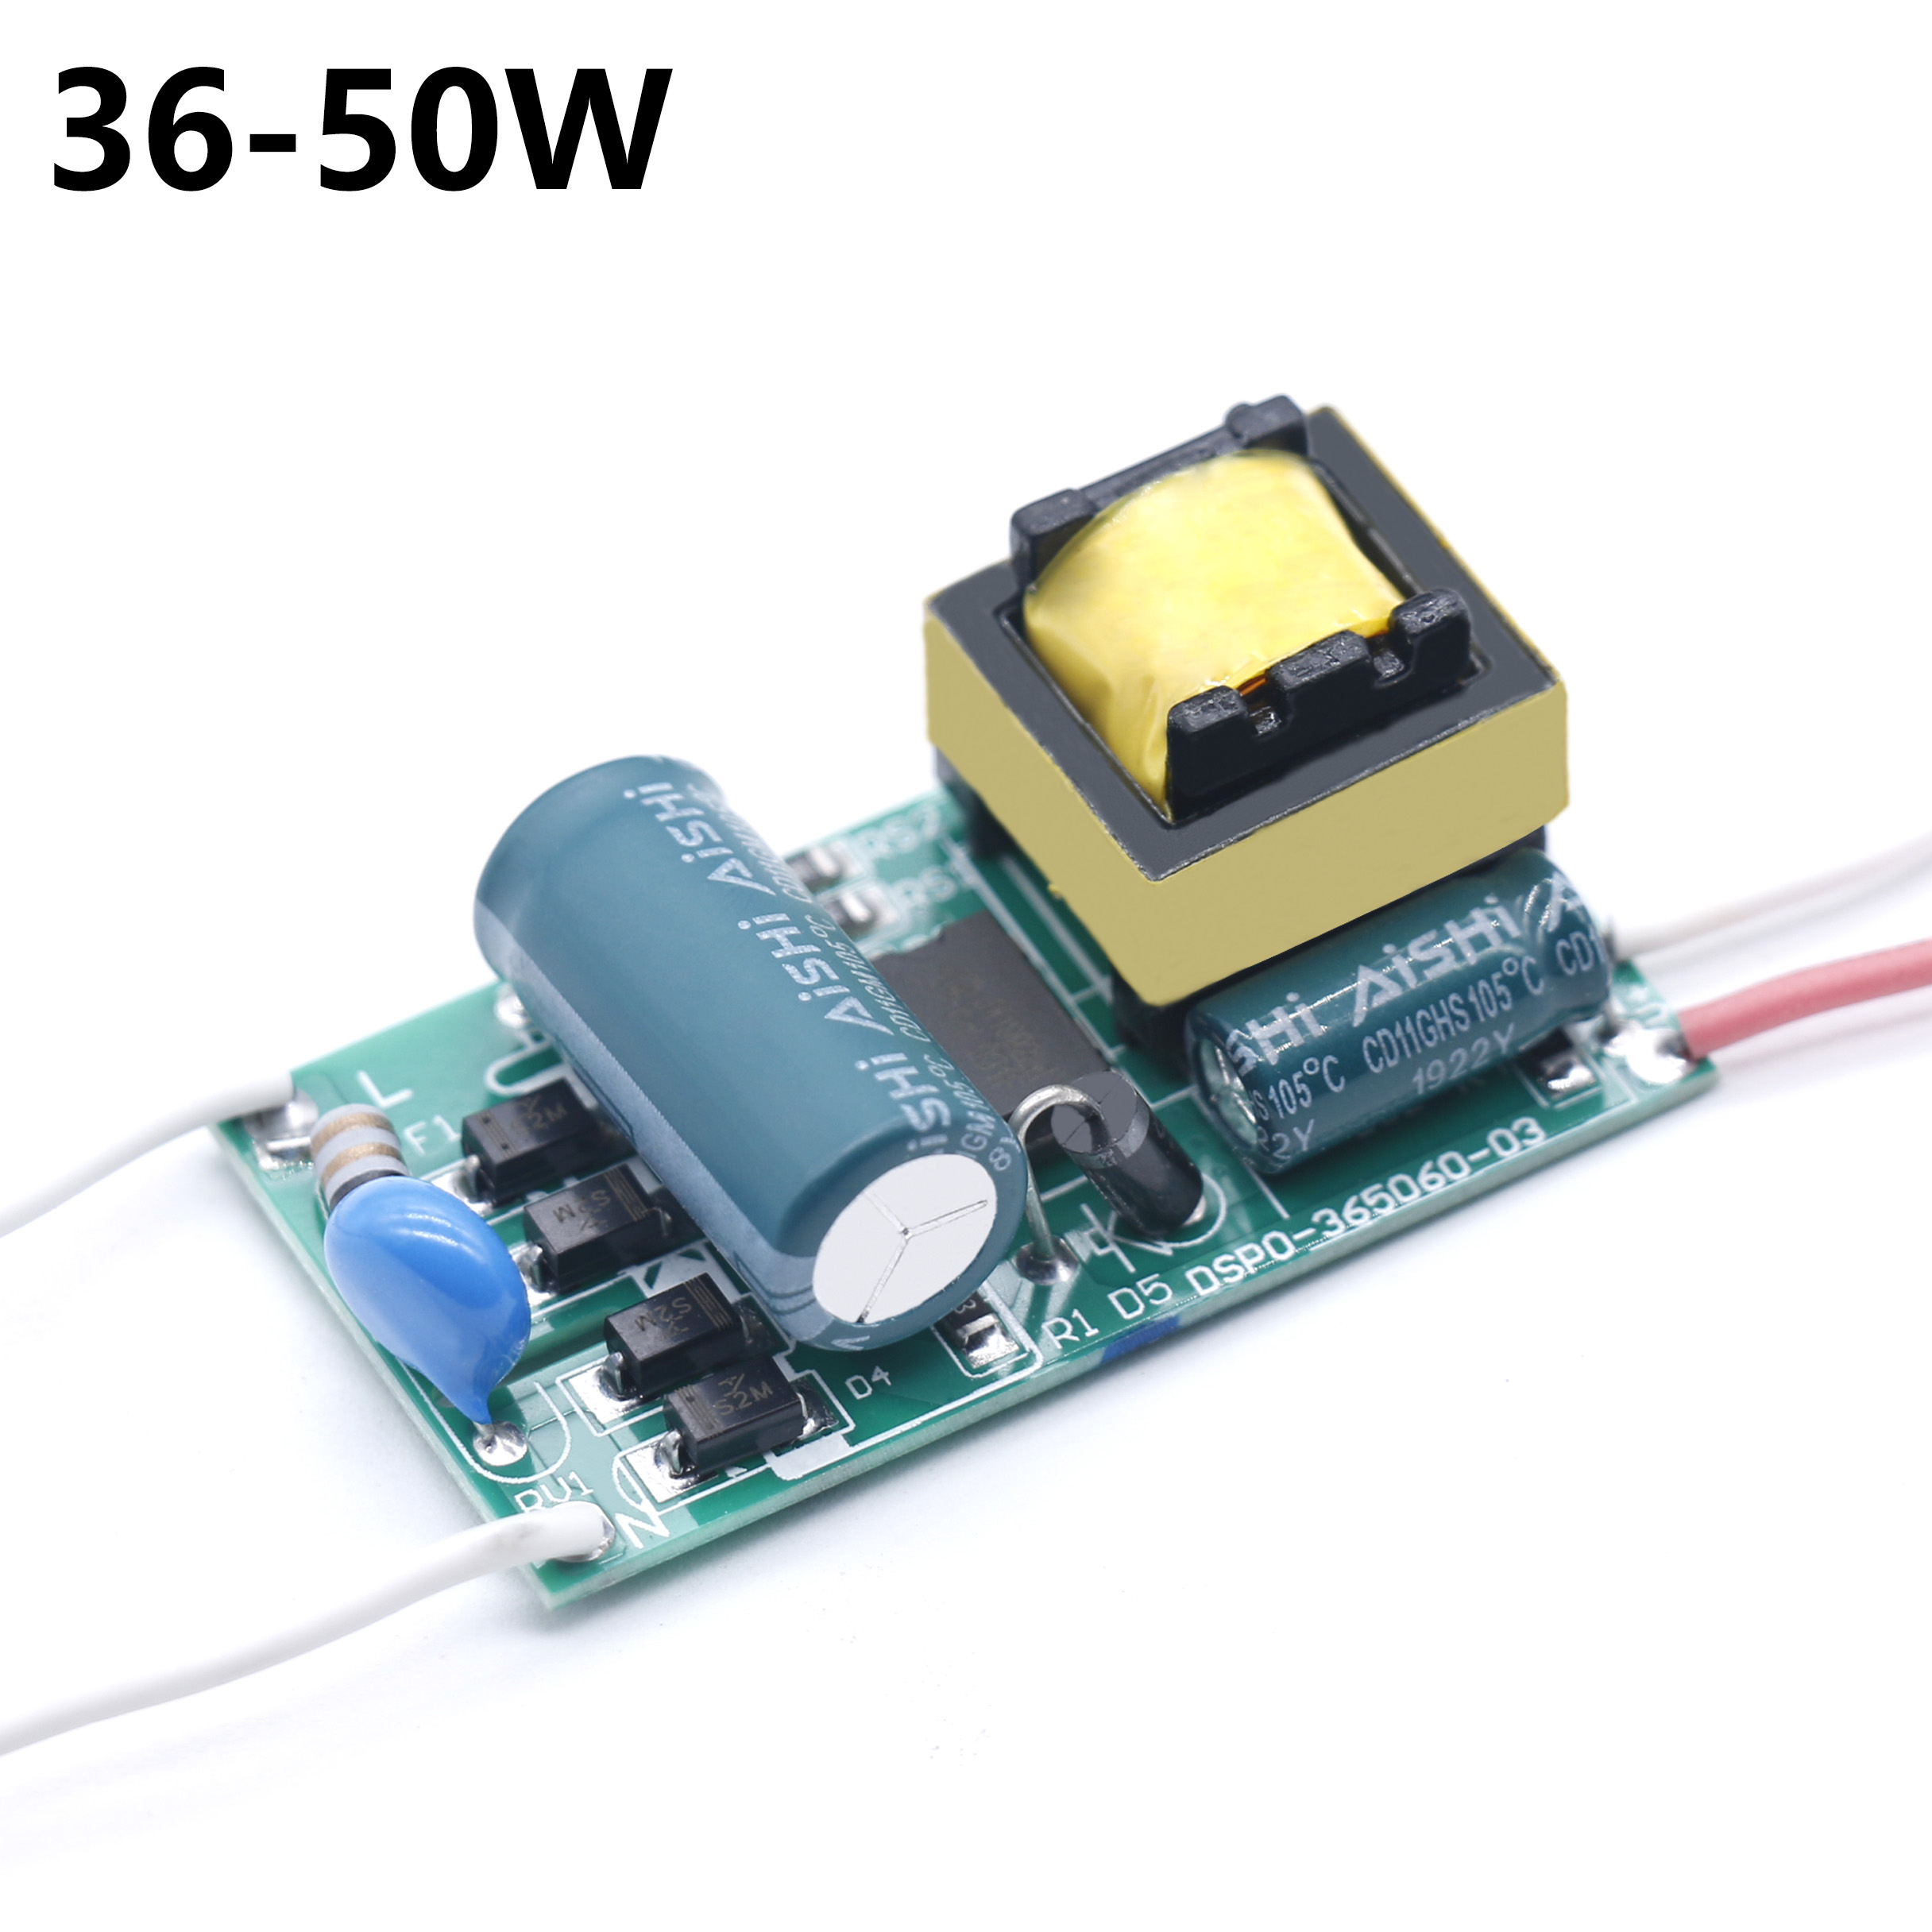 LED Driver 36-50W Power Supply Constant Current DC120-160V Automatic Voltage Control Lighting Transformers For LED Lights DIY